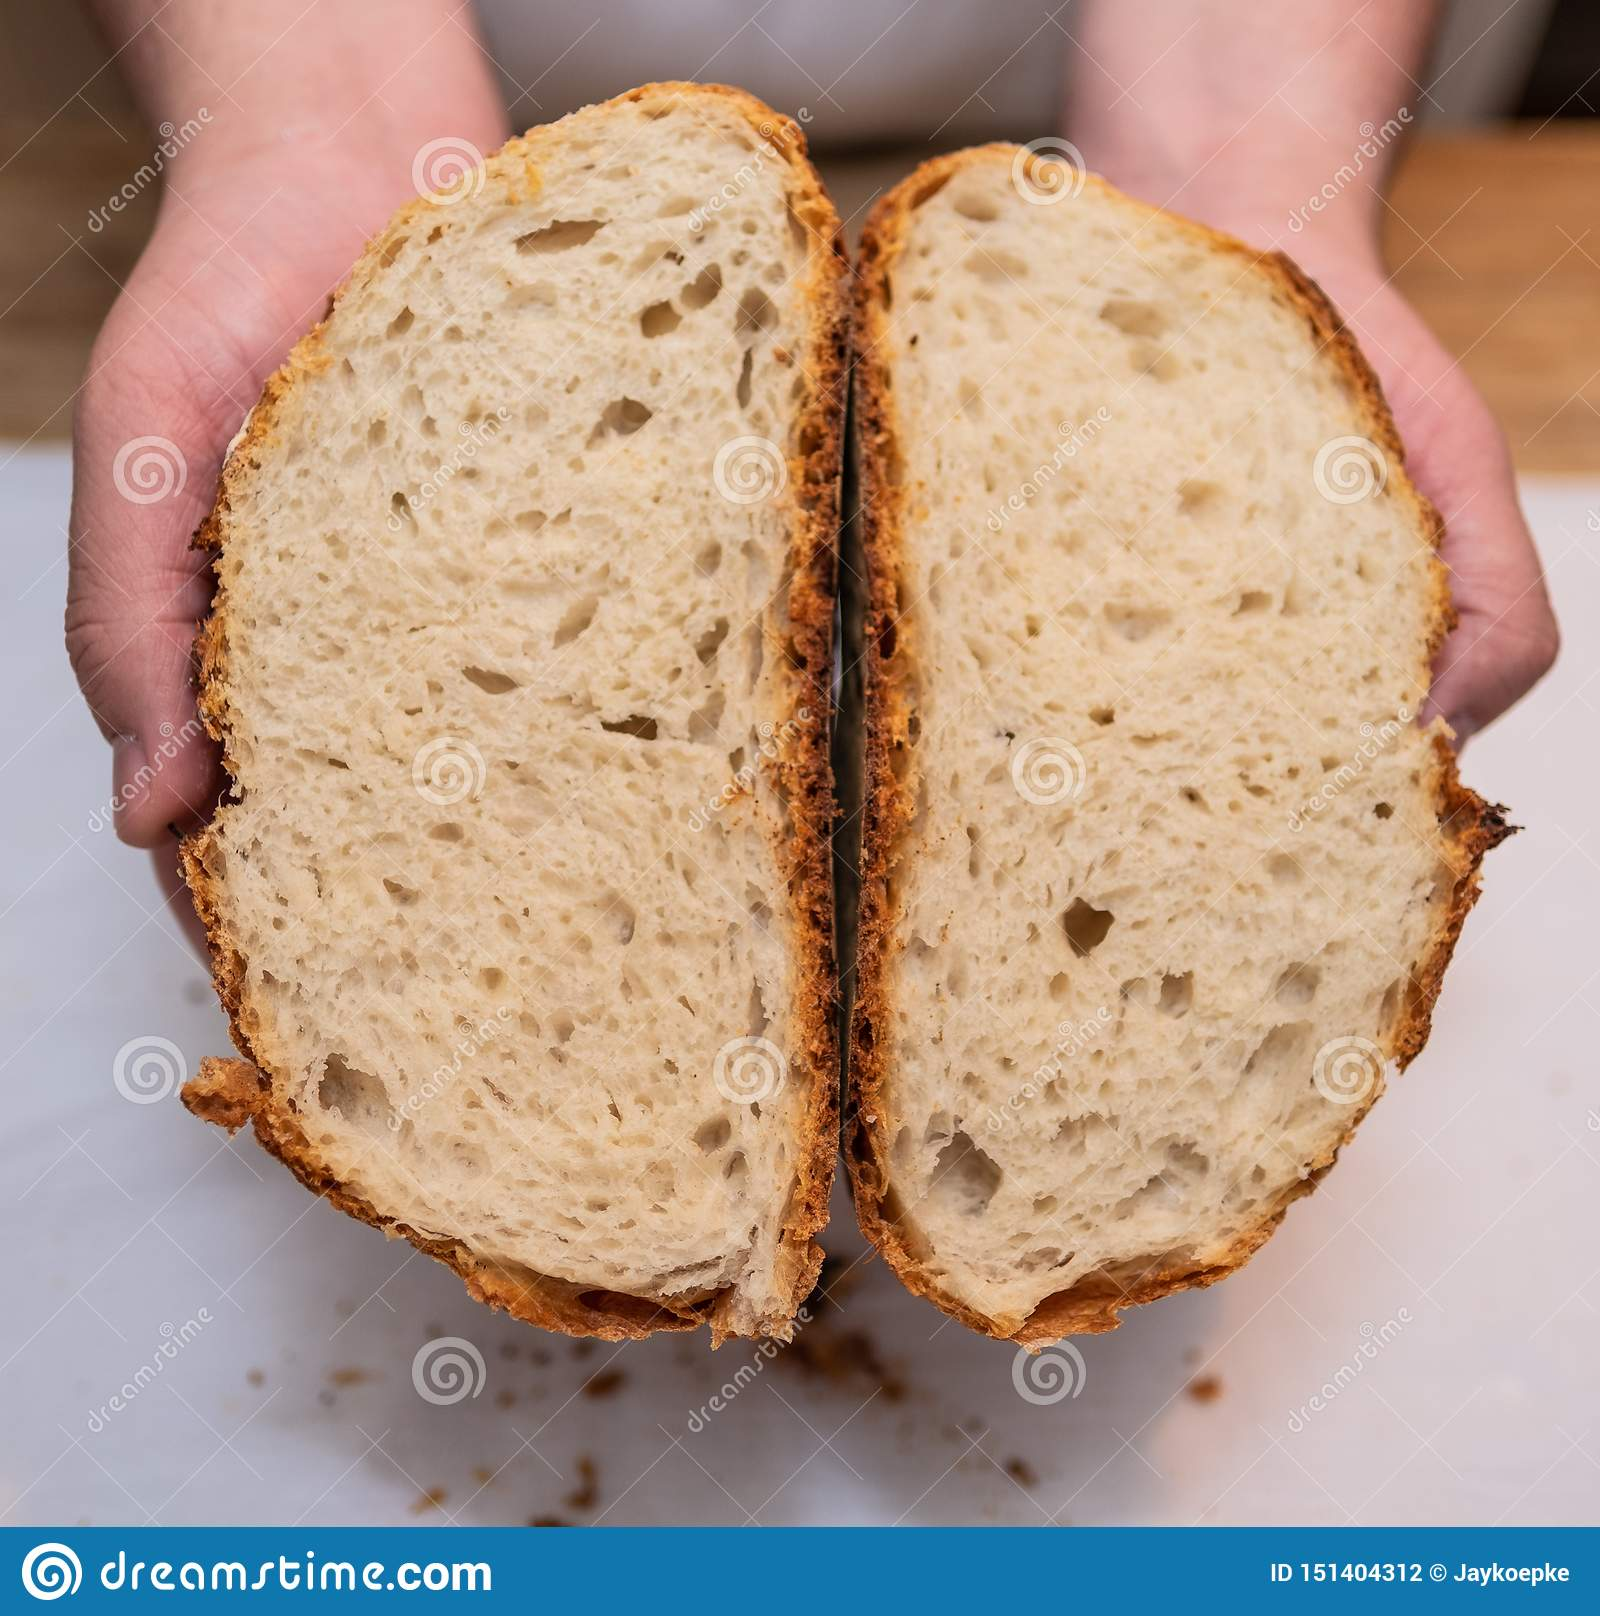 Cross section of freshly baked loaf of bread